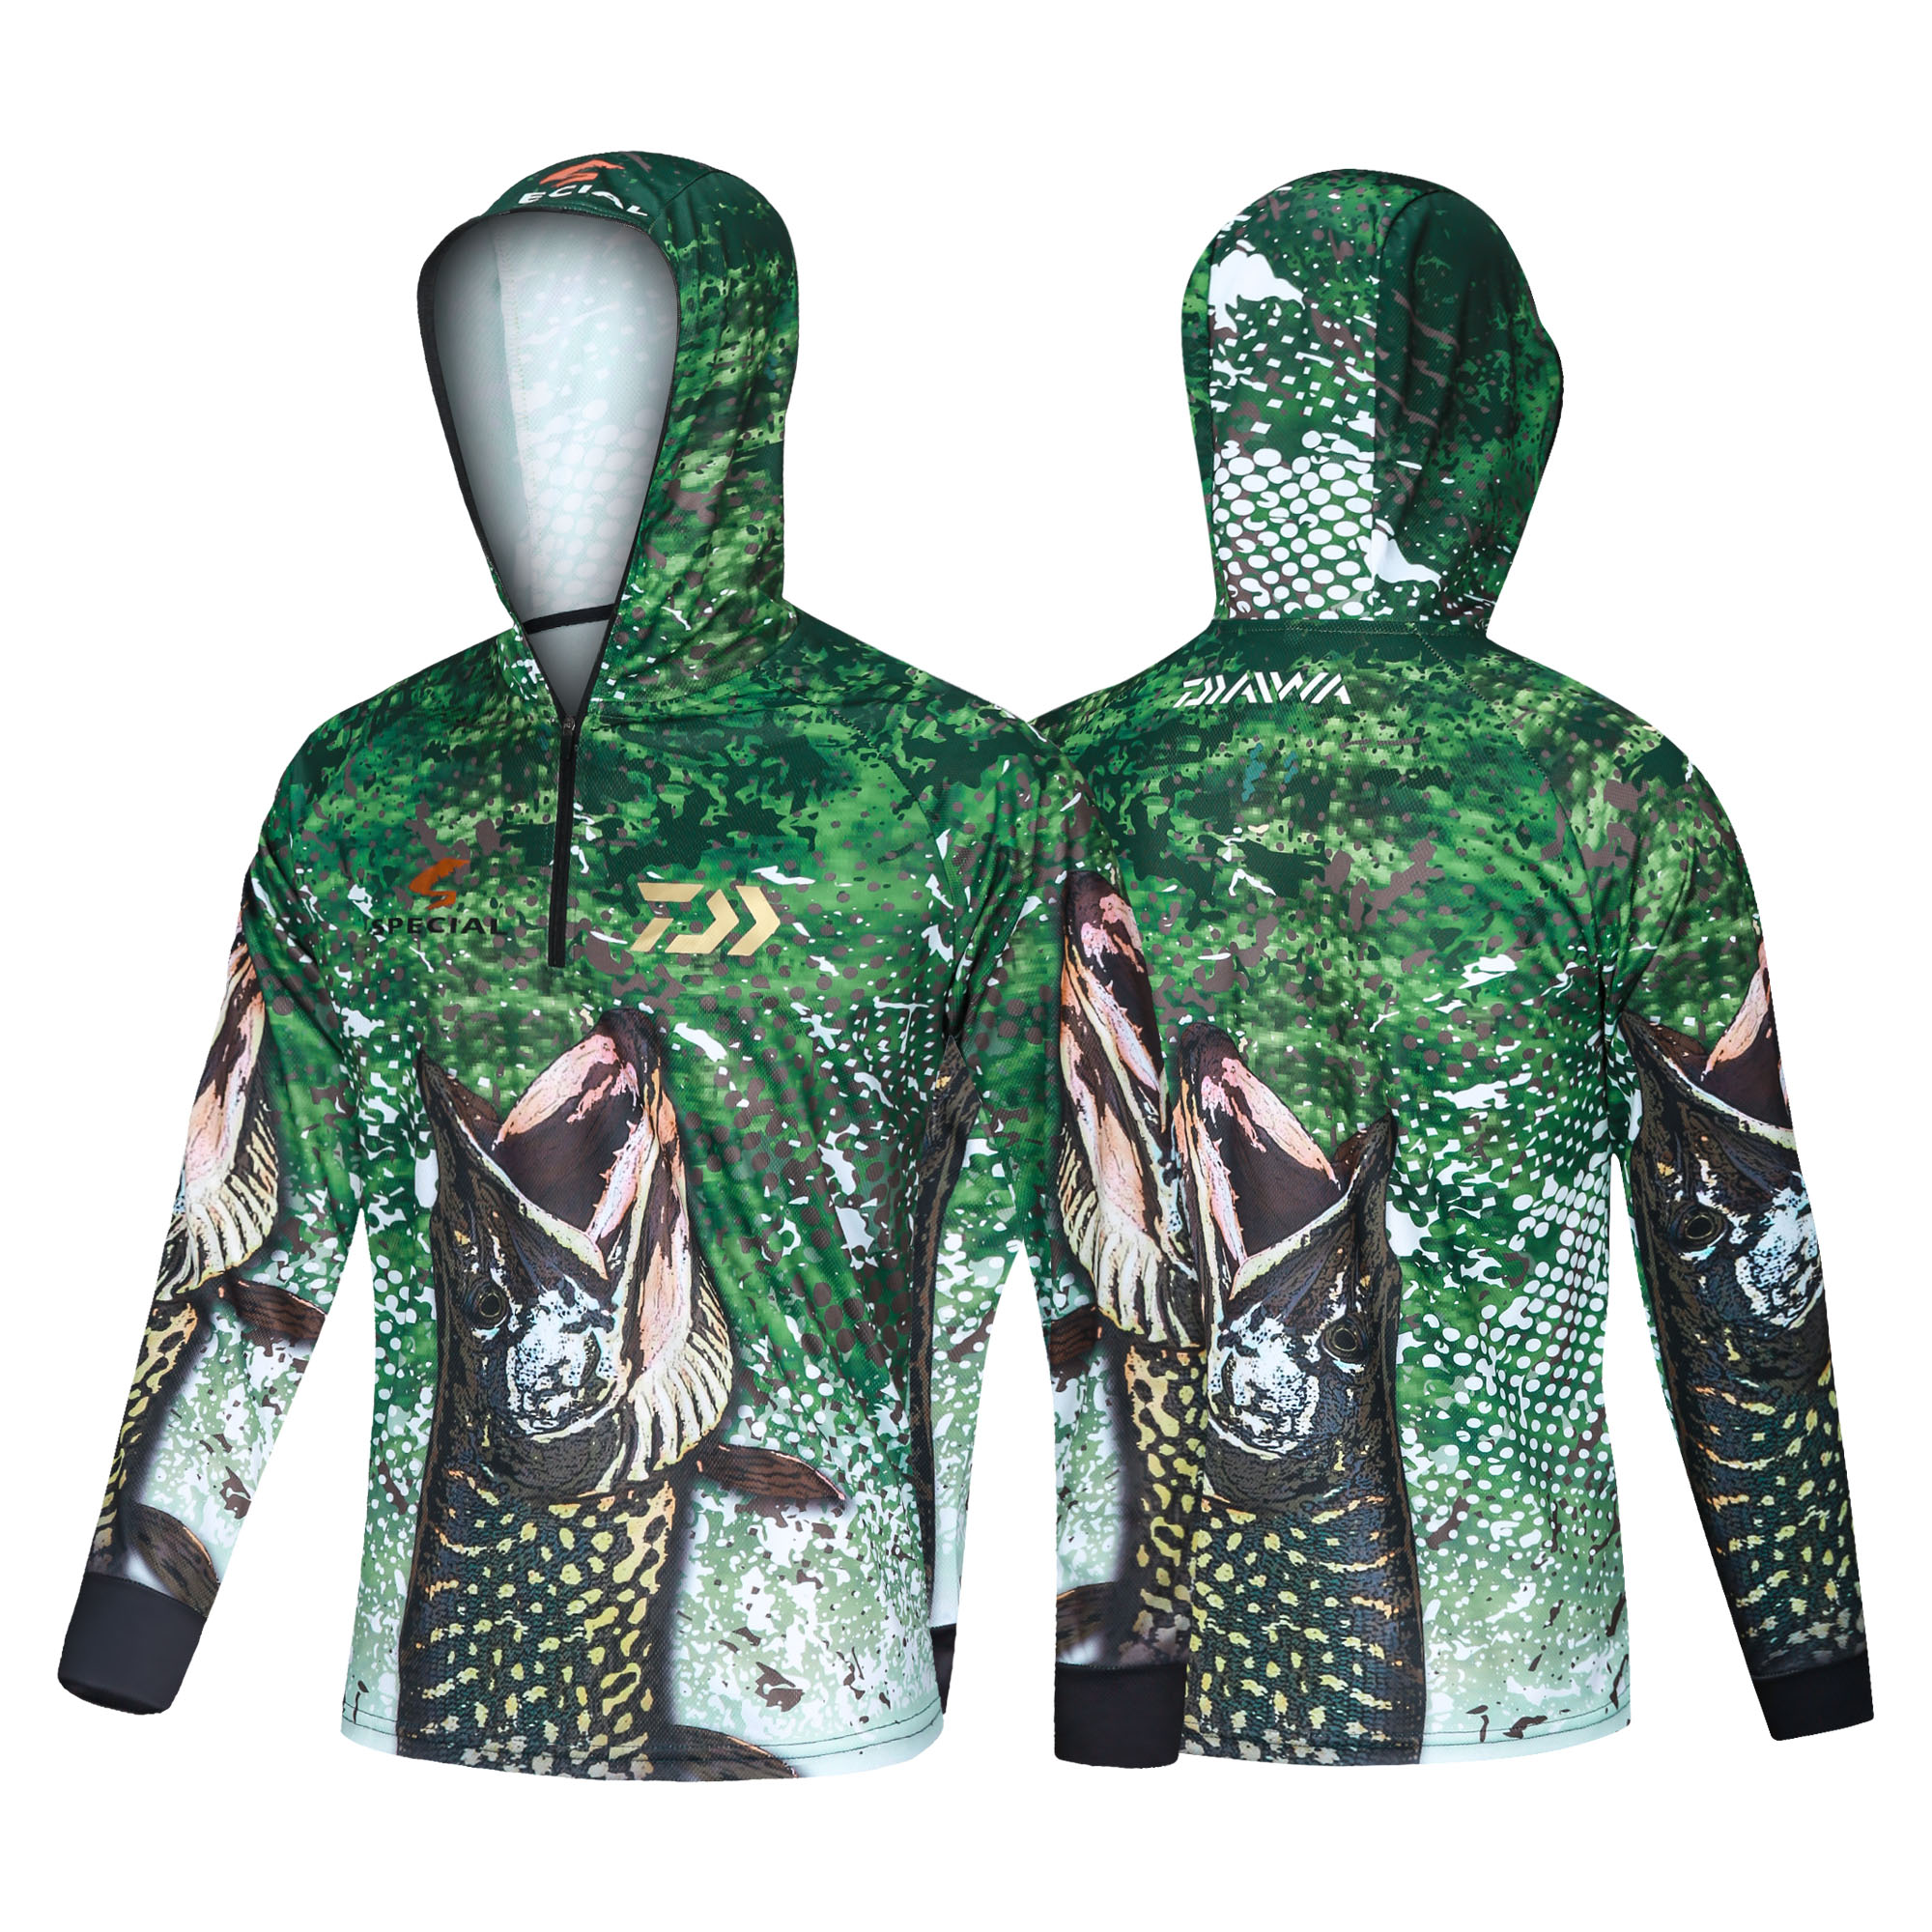 2020 New DAIWA Fishing Clothing Camouflage Fishing Clothes Sunscreen Breathable Anti Mosquito Quick Dry DAWA Fishing Shirt